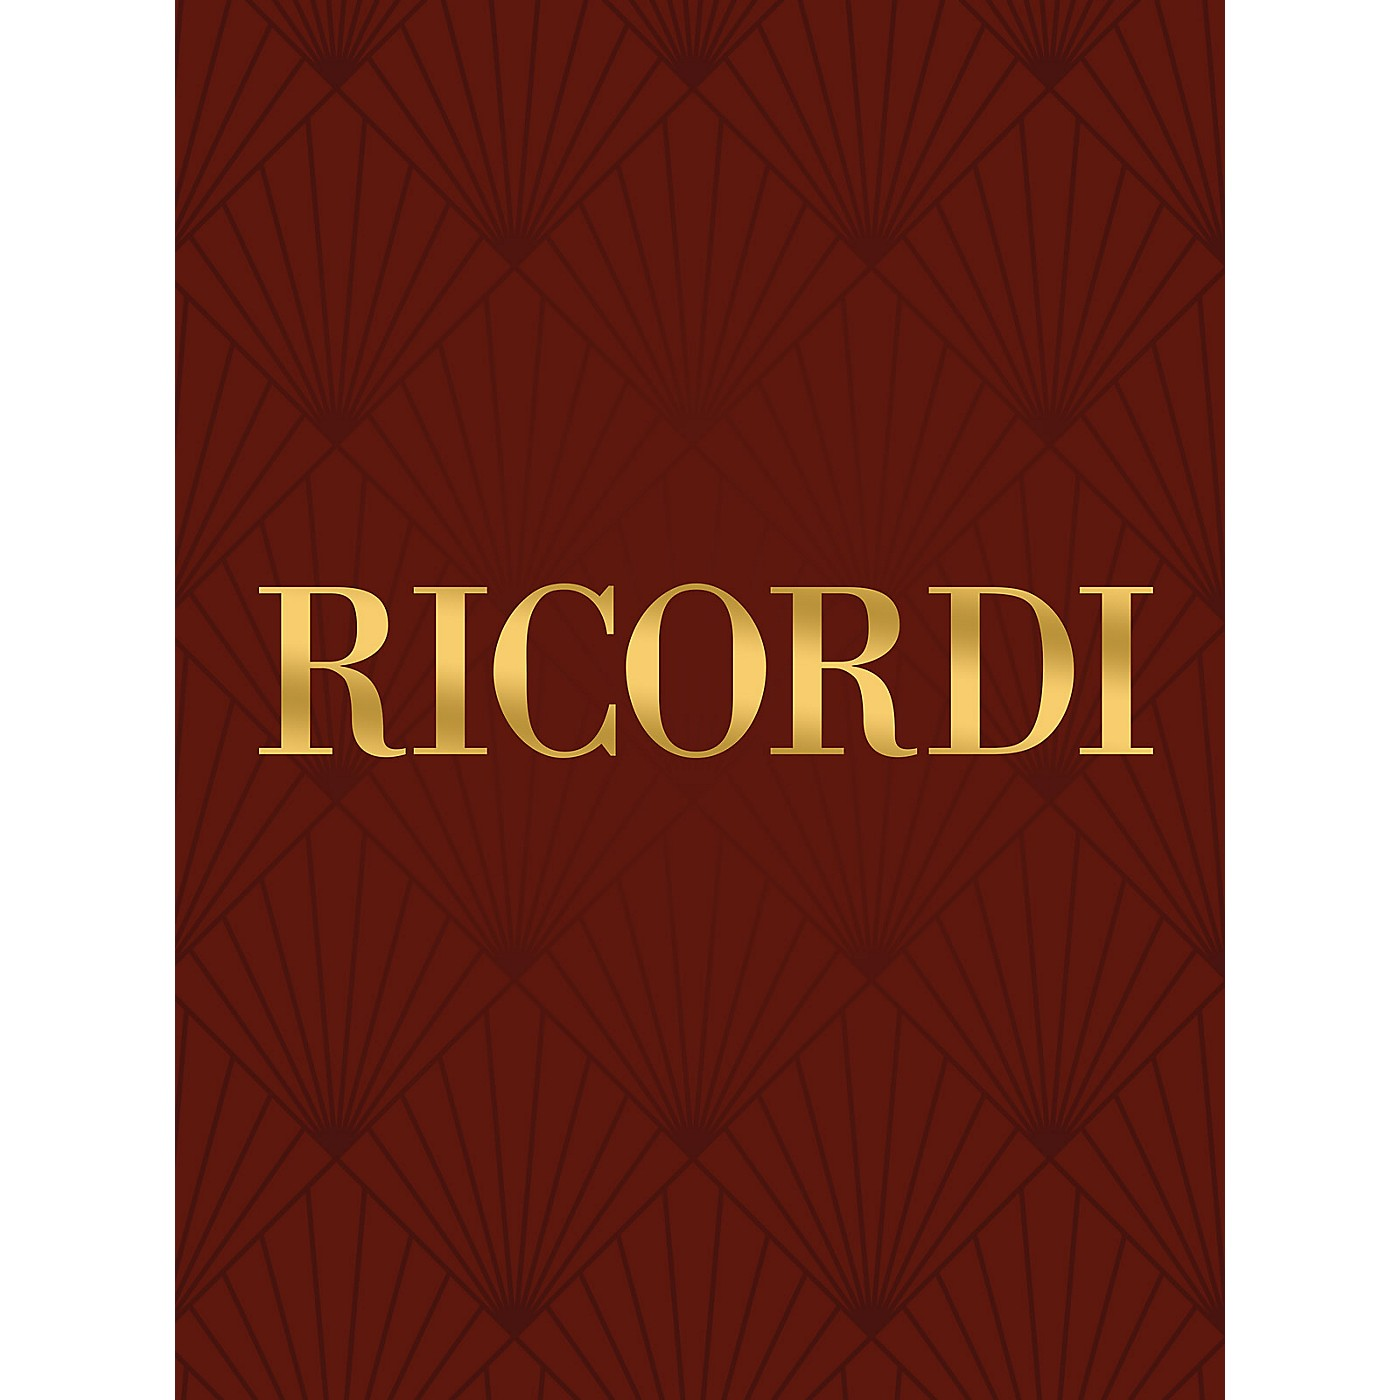 Ricordi Difficult Passages and Solos - Volume II (Flute Solo) Woodwind Method Series Composed by B Torchio thumbnail